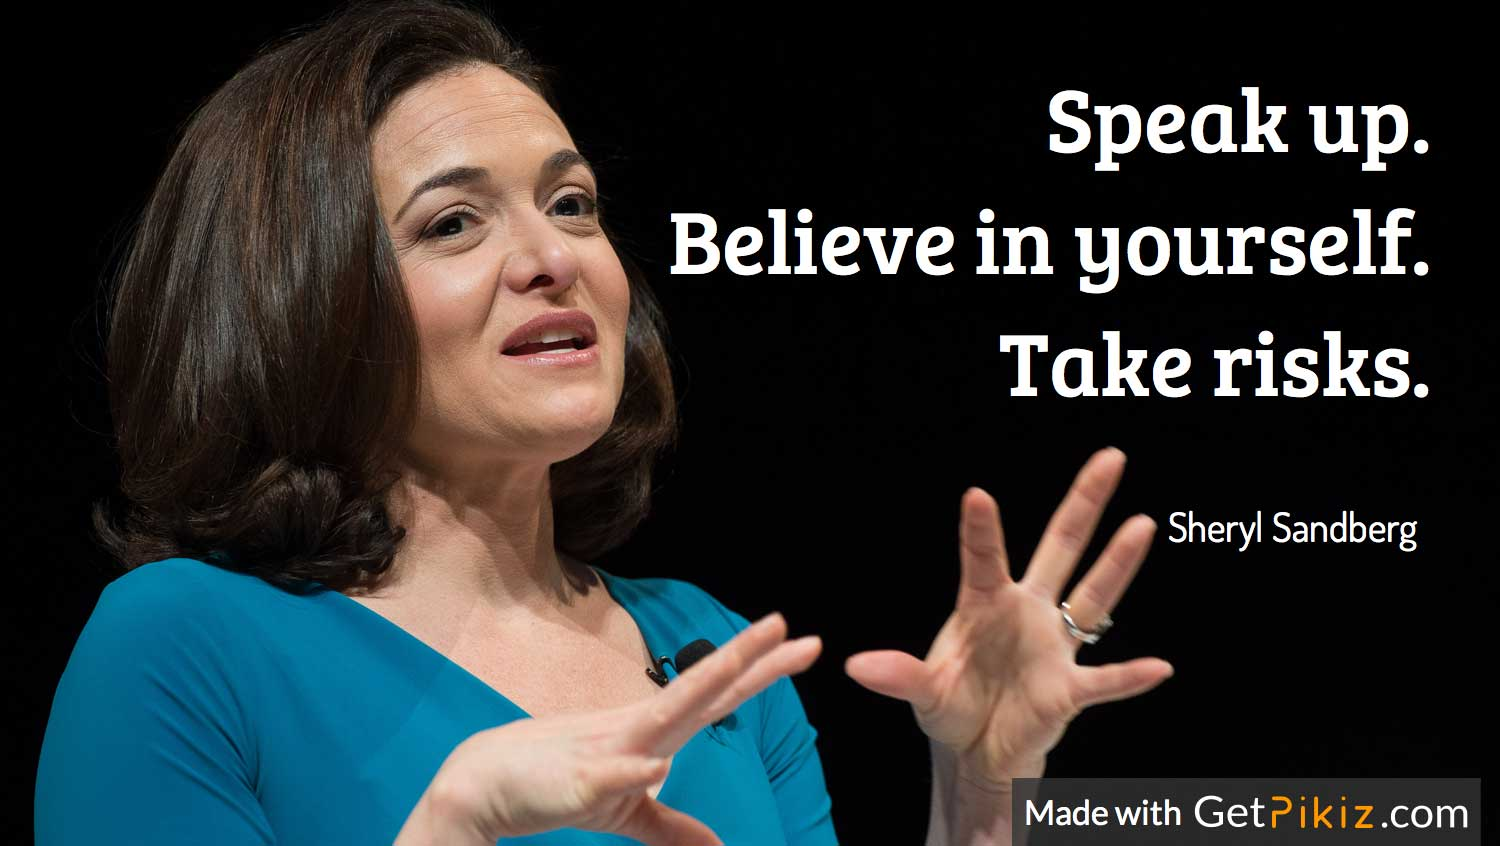 Speak up. Believe in yourself. Take risks. - Sheryl Sandberg